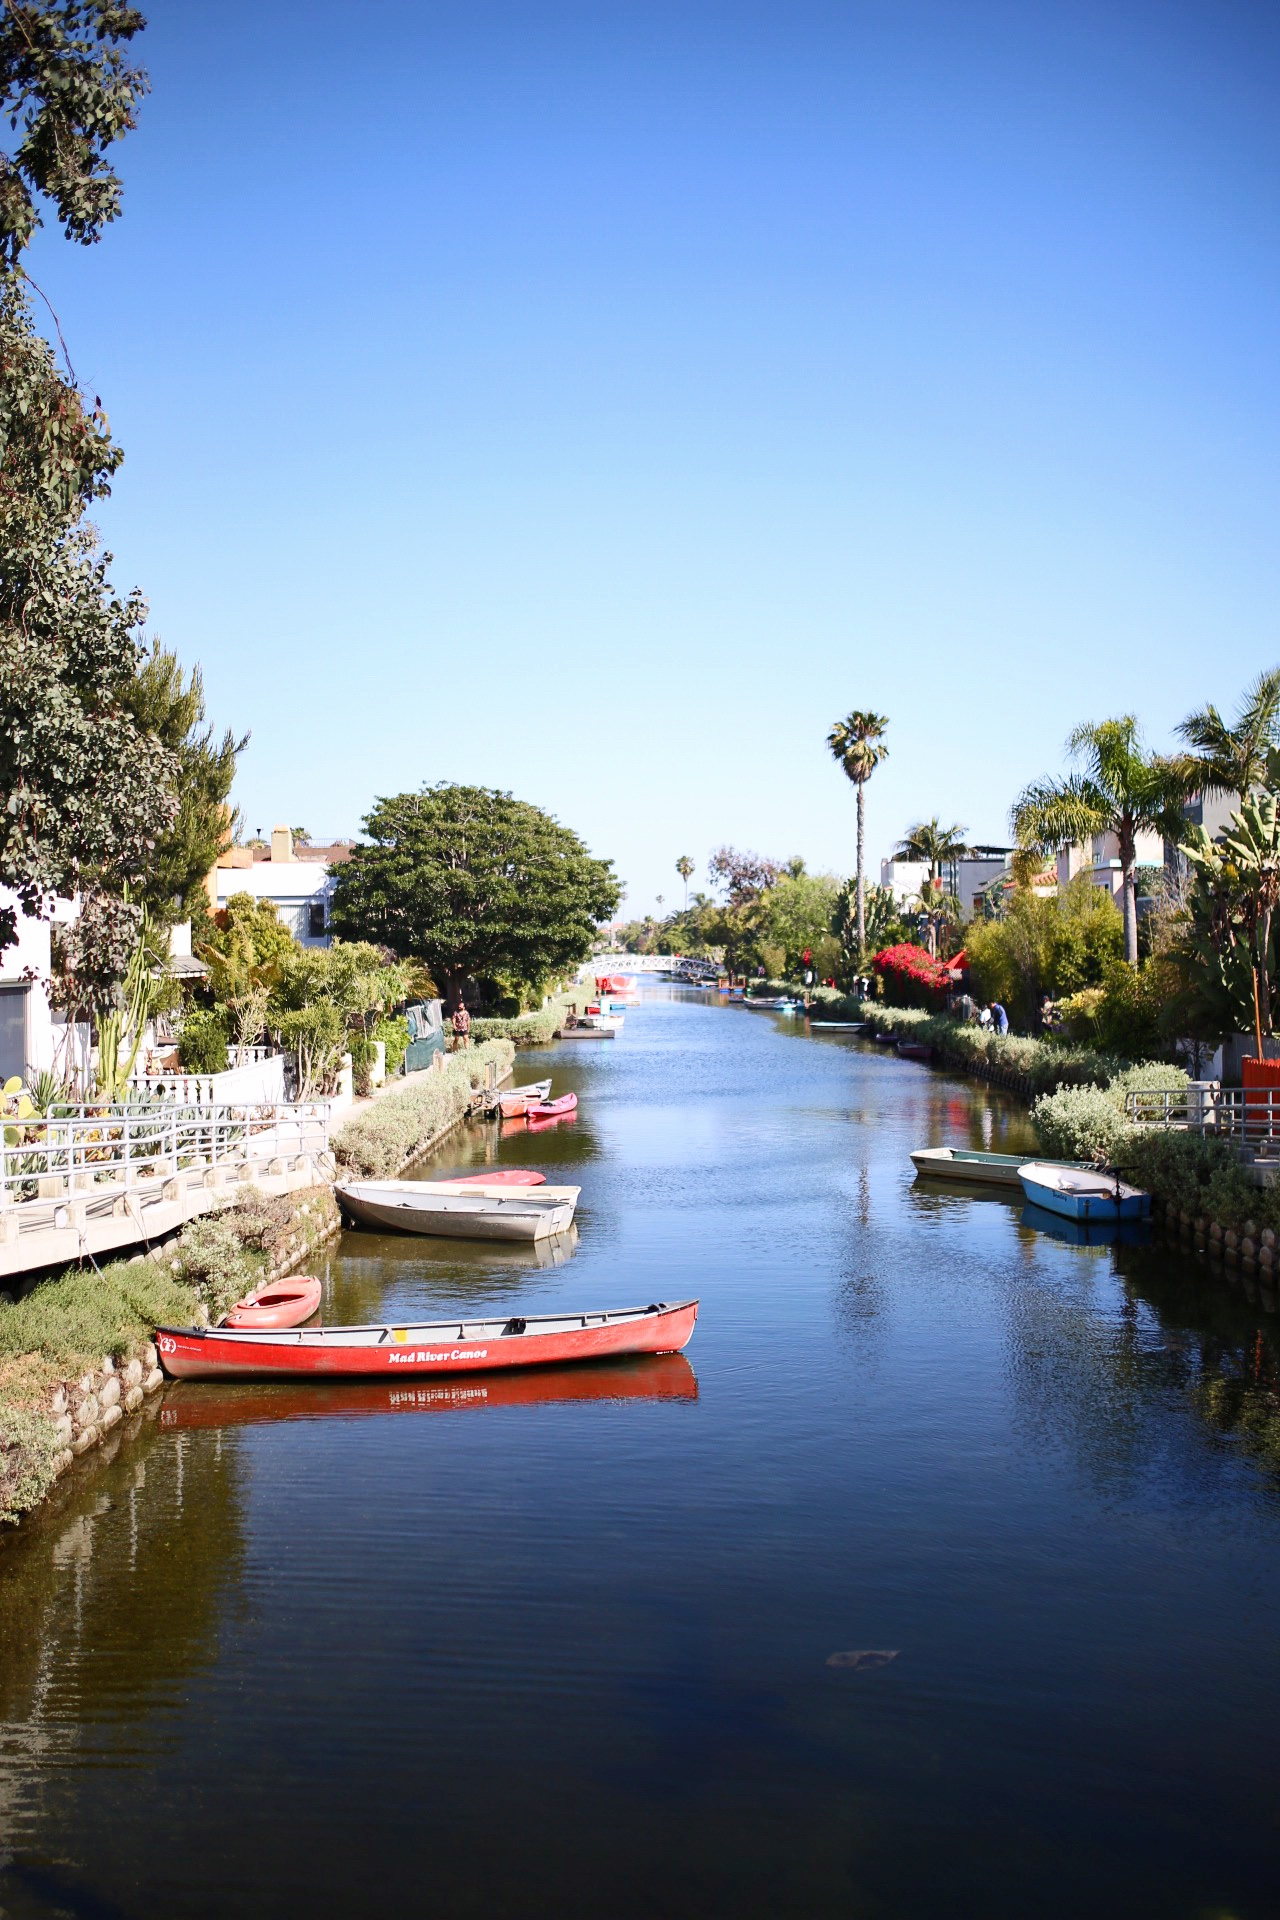 The Ultimate Weekend in Los Angeles, California - Venice Beach & Venice Canals